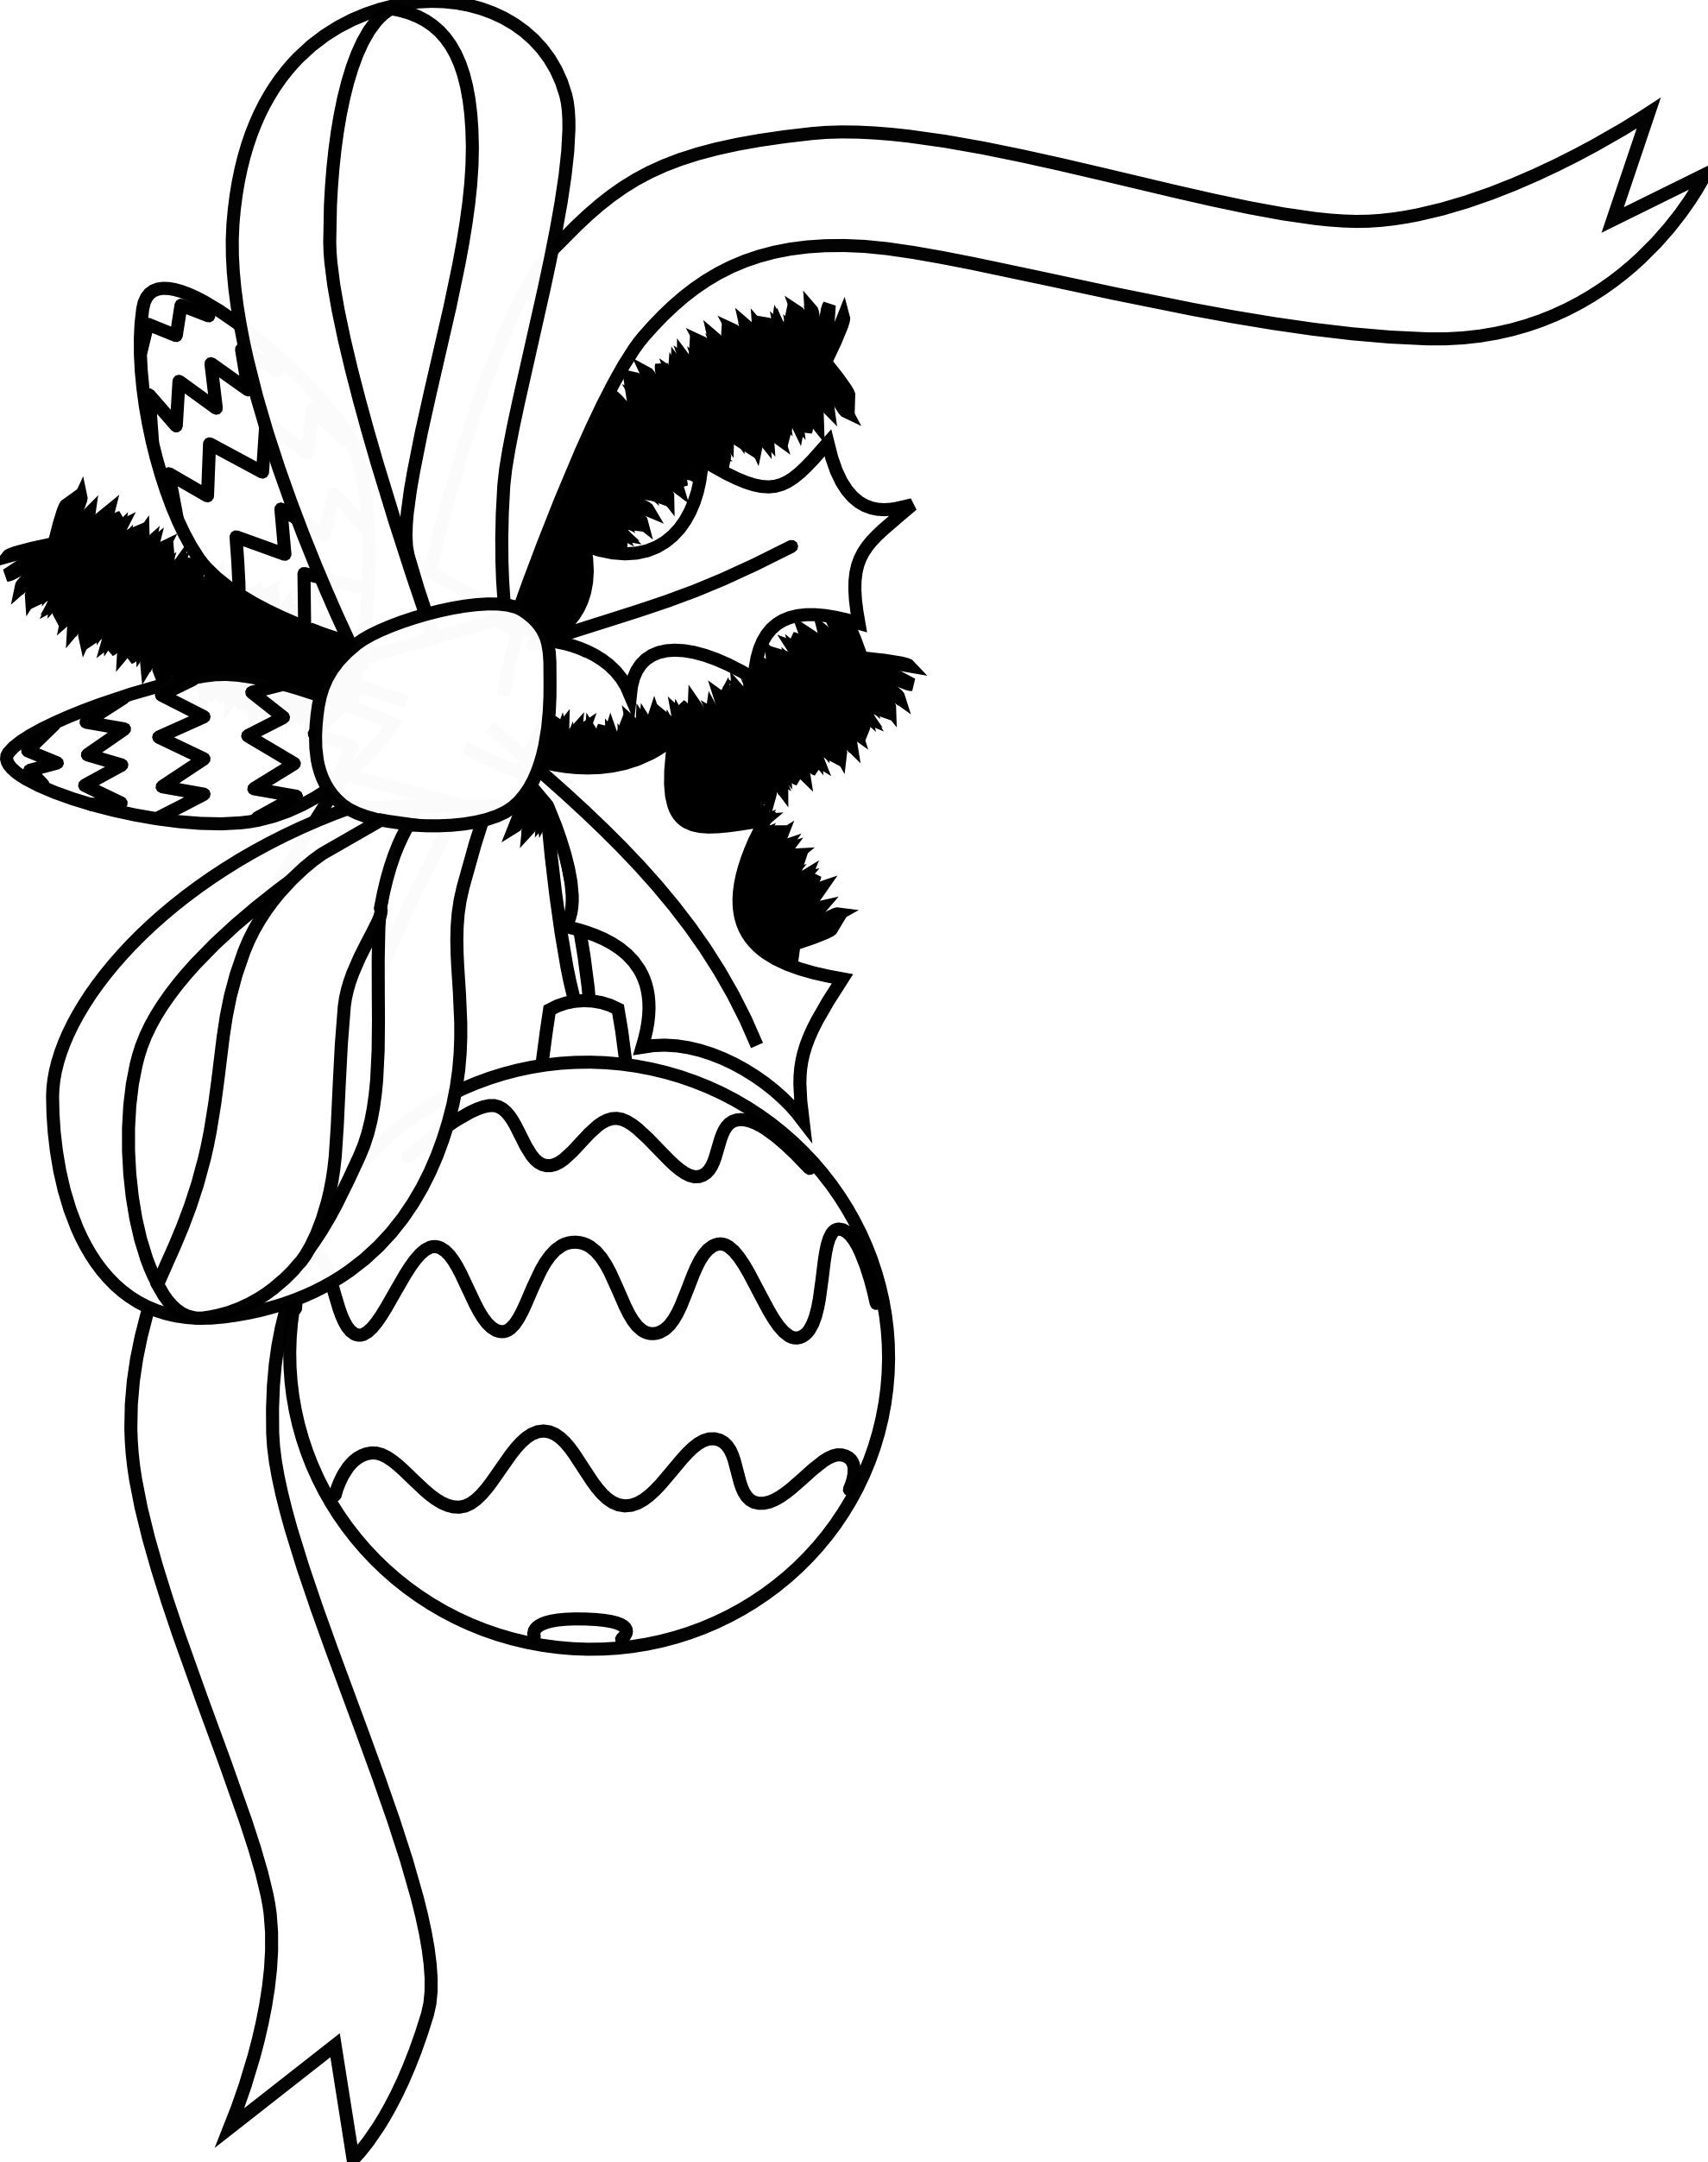 Black and white christmas wreath clipart clipart black and white stock Holiday Black And White Clipart clipart black and white stock